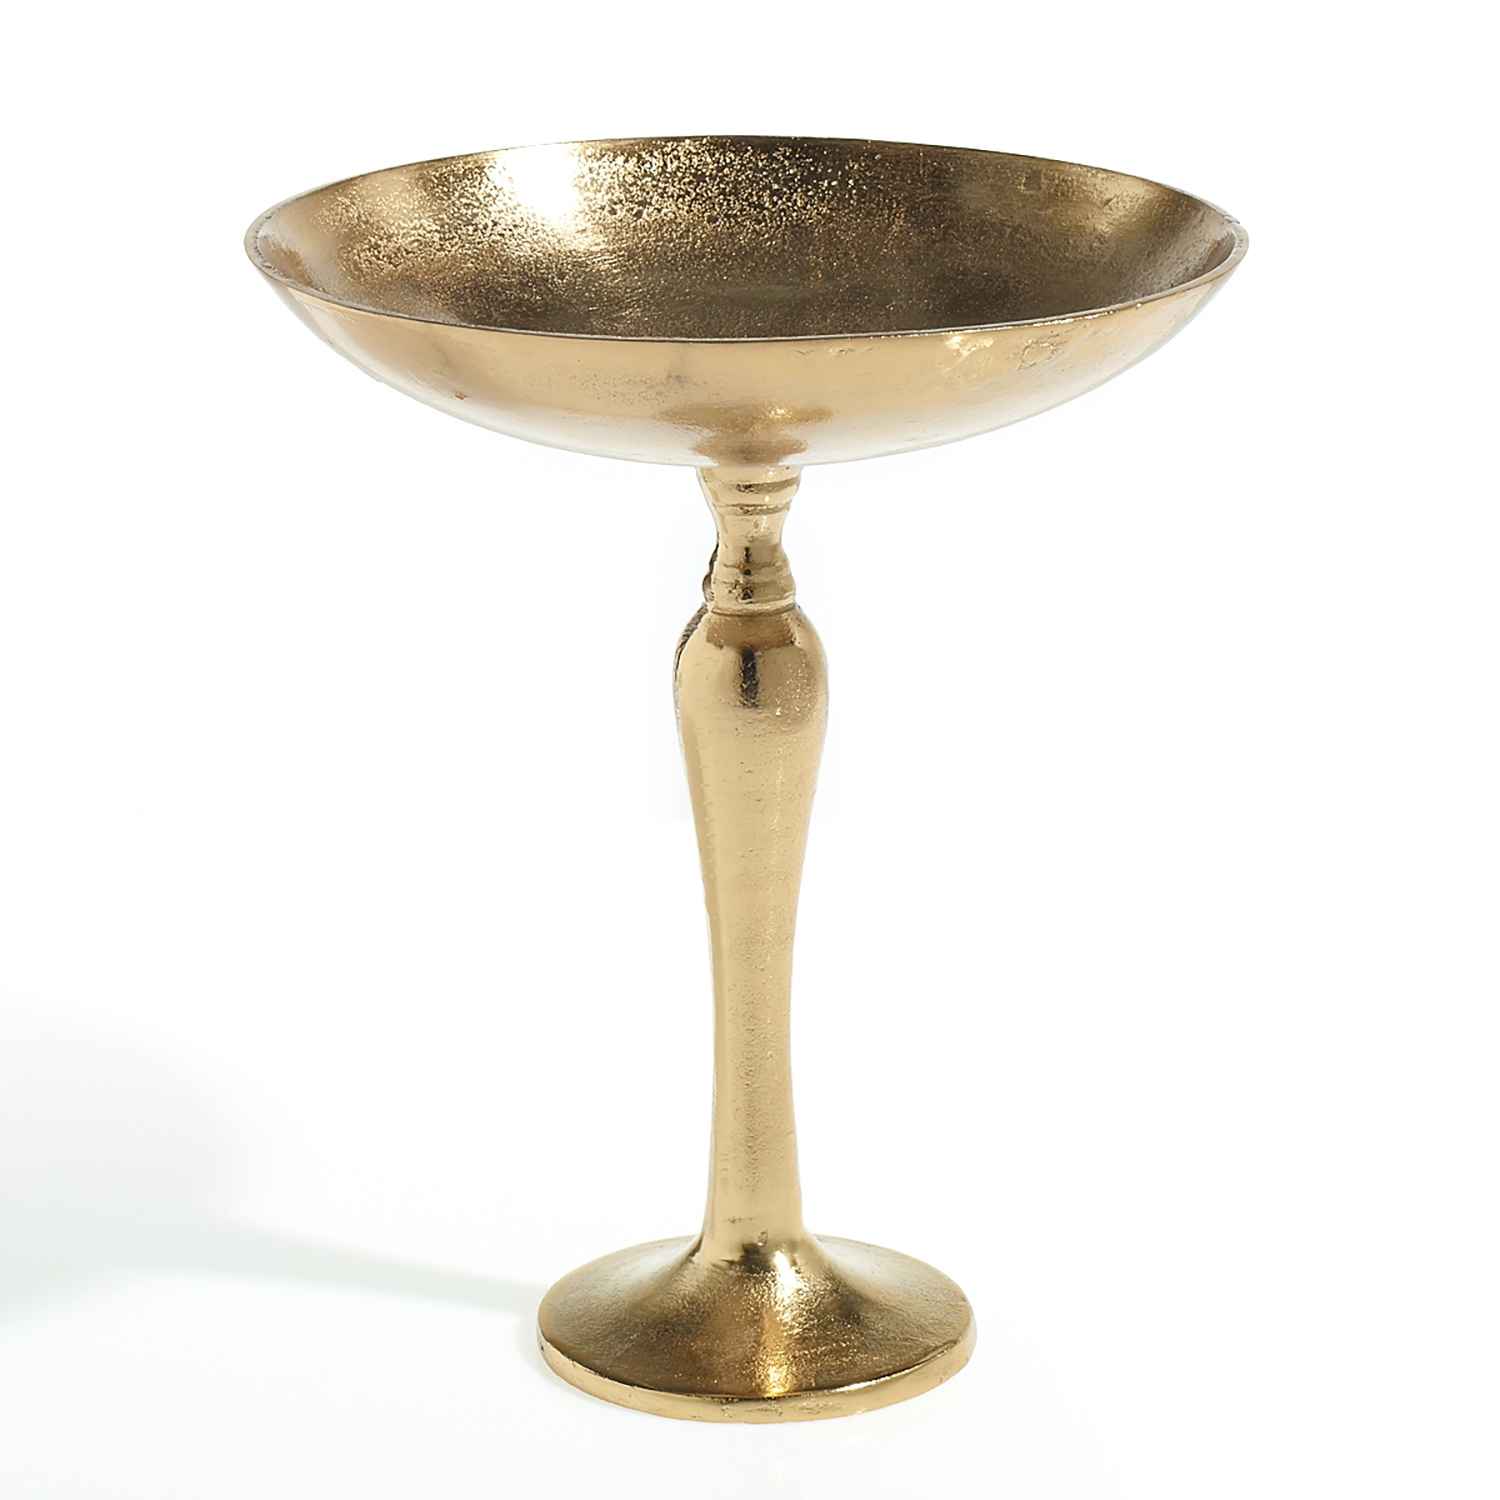 Tall Gold Pedestal  1 Available / $25 ea.